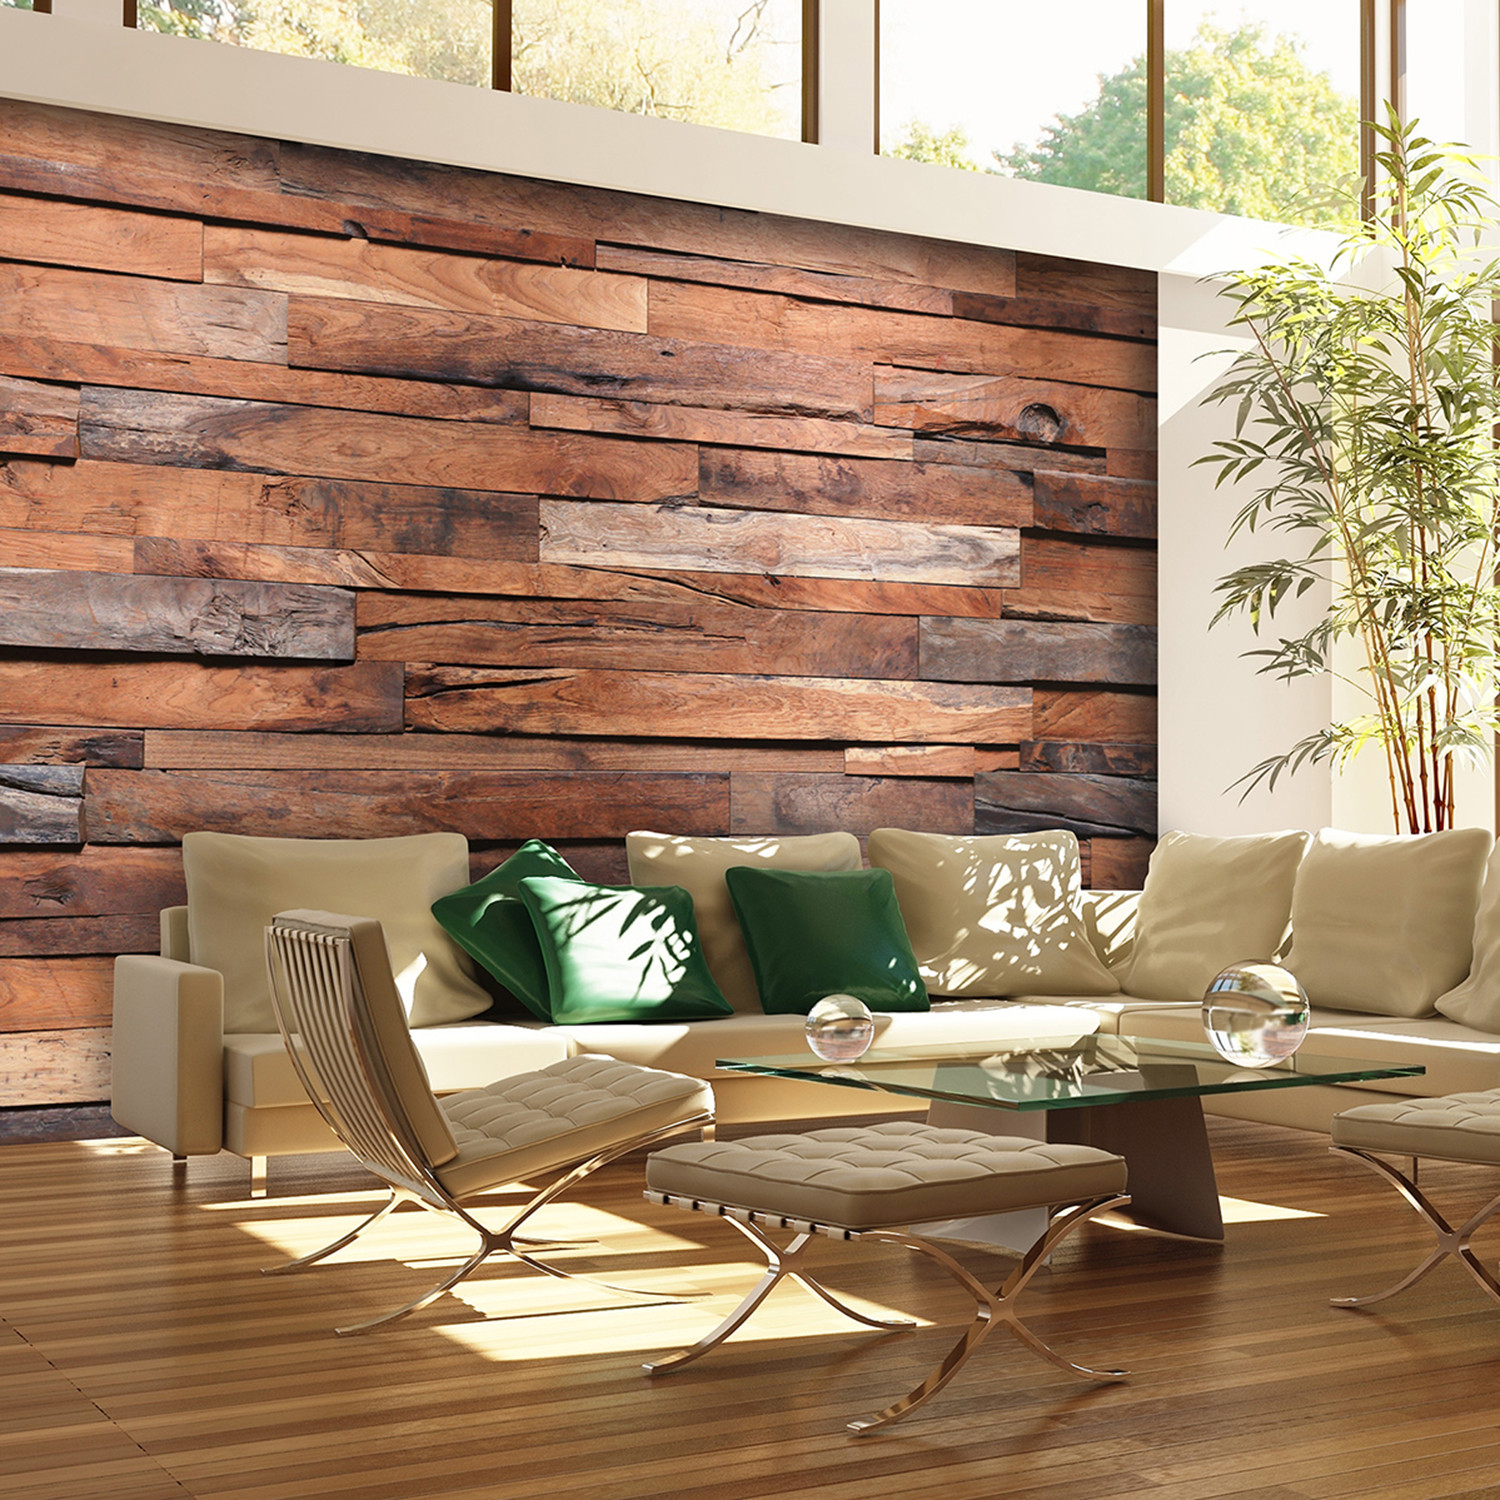 Reclaimed Wood Wall Mural Part 27